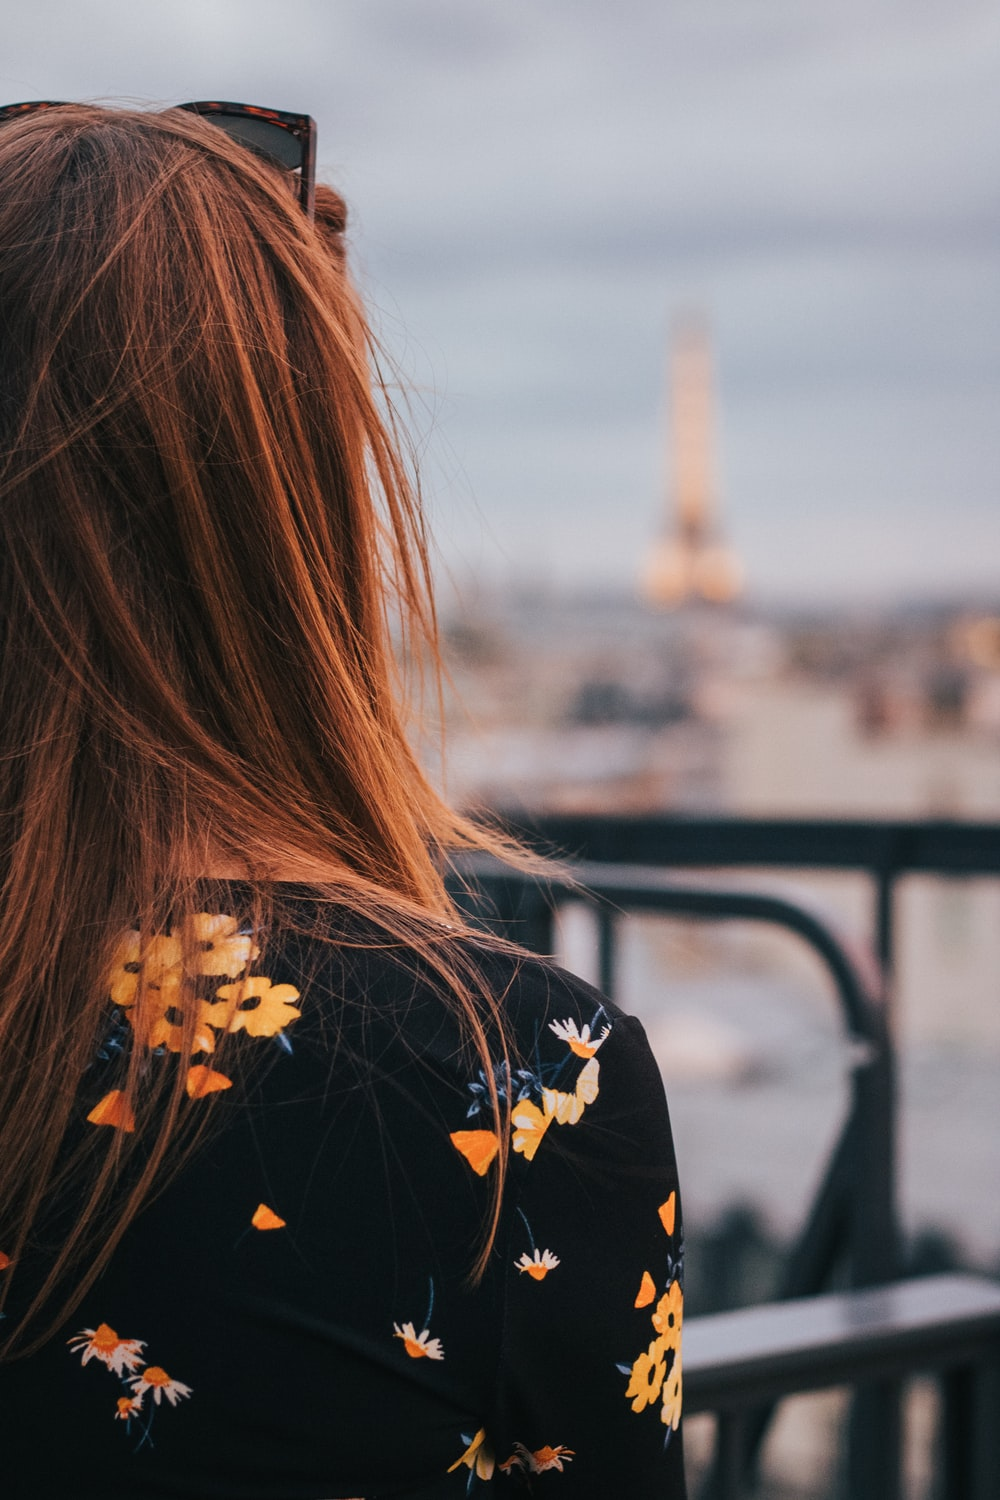 woman in black and yellow floral shirt standing near railings during daytime